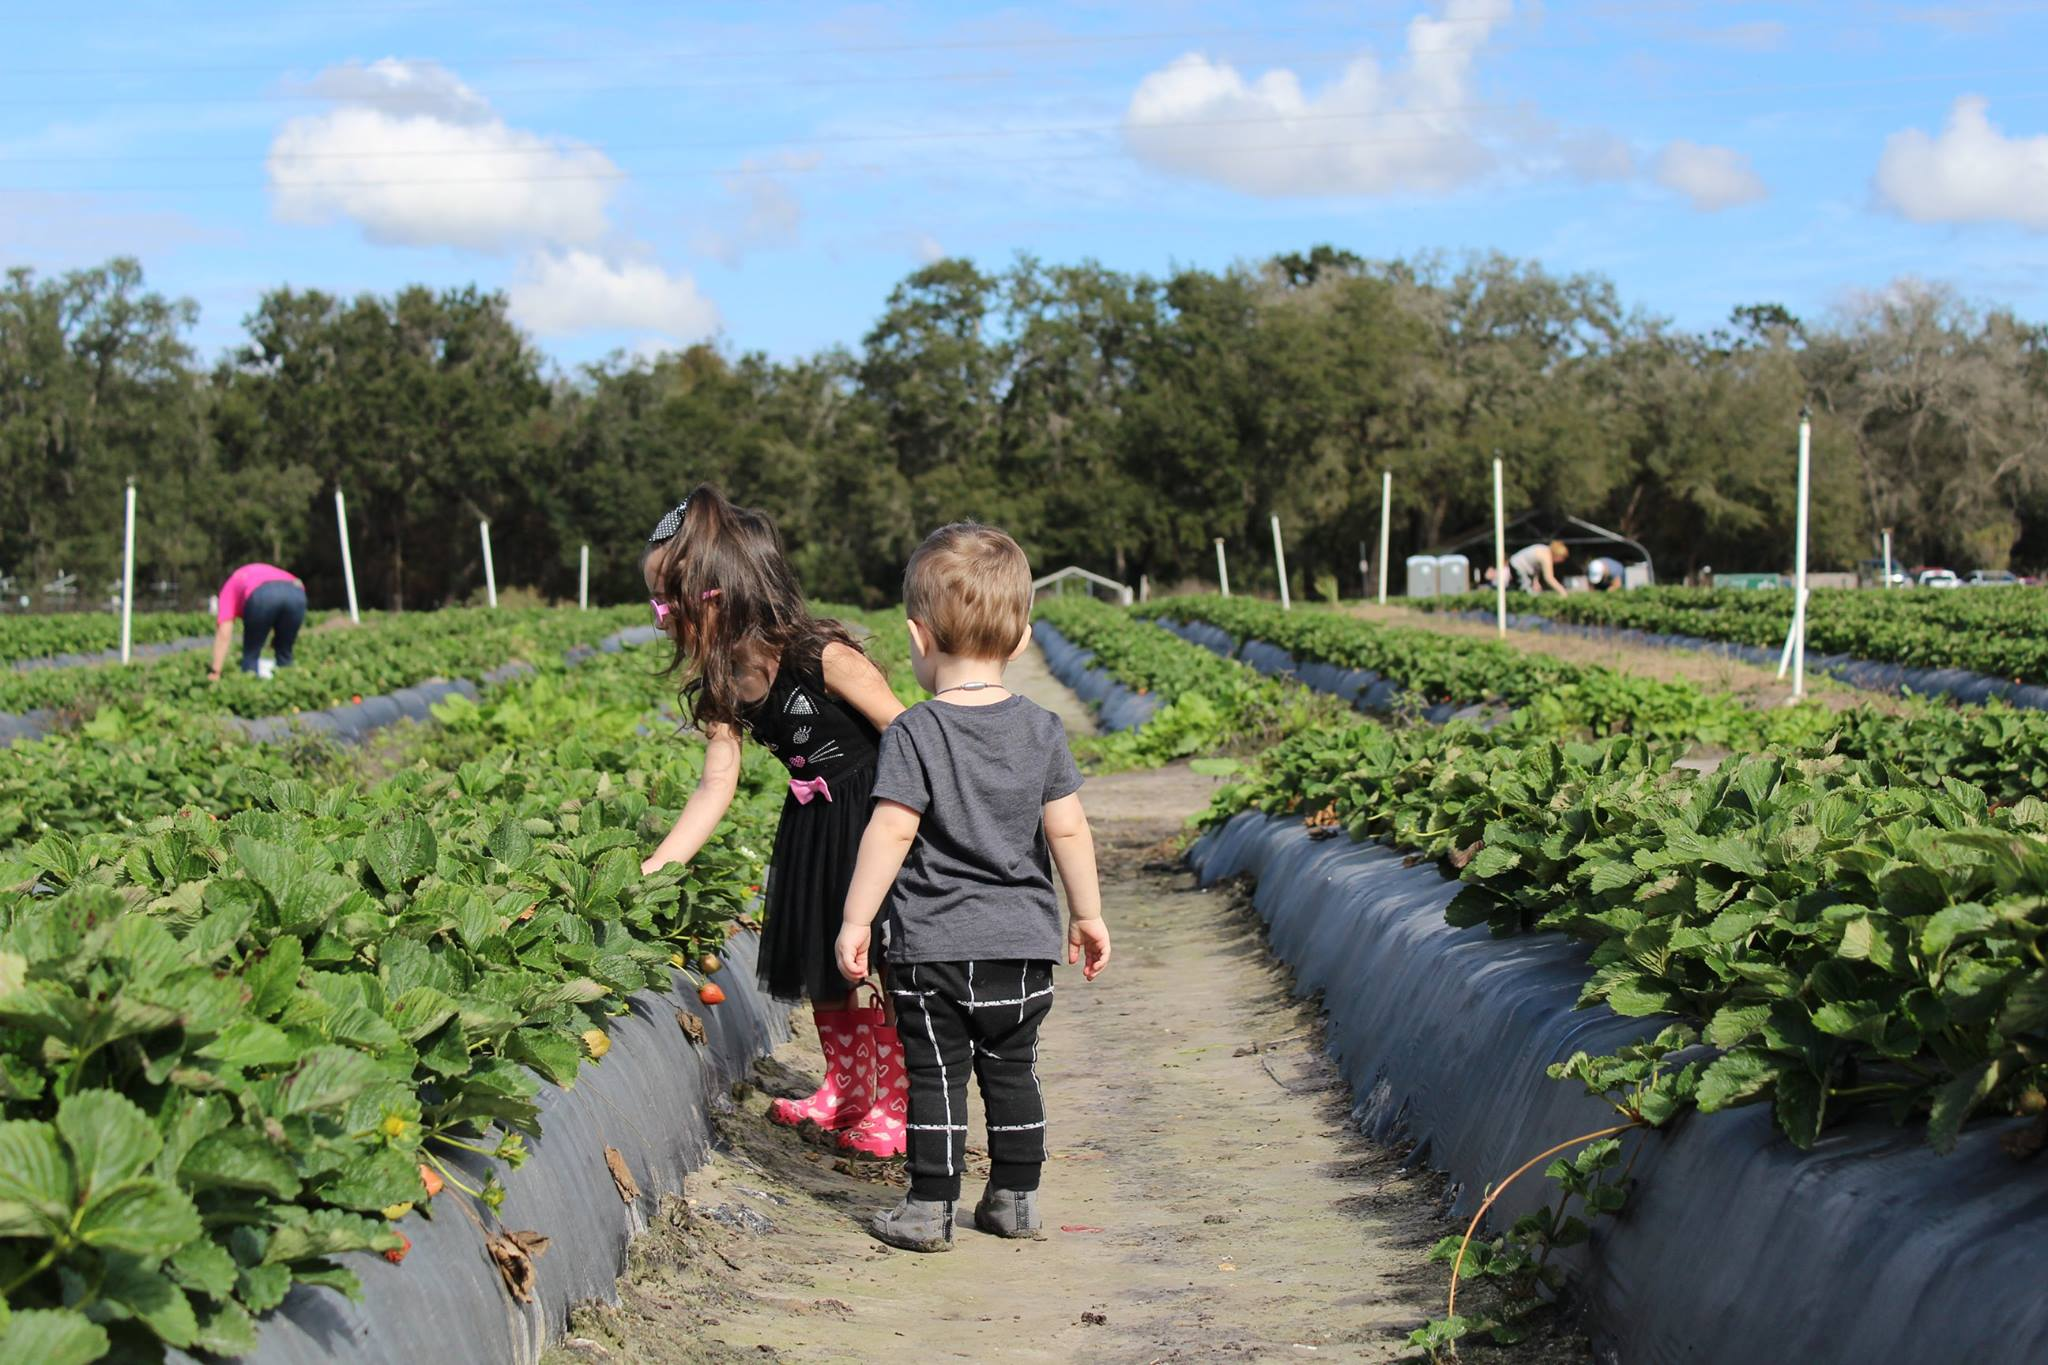 Strawberry Picking with Toddlers at a Local Farm